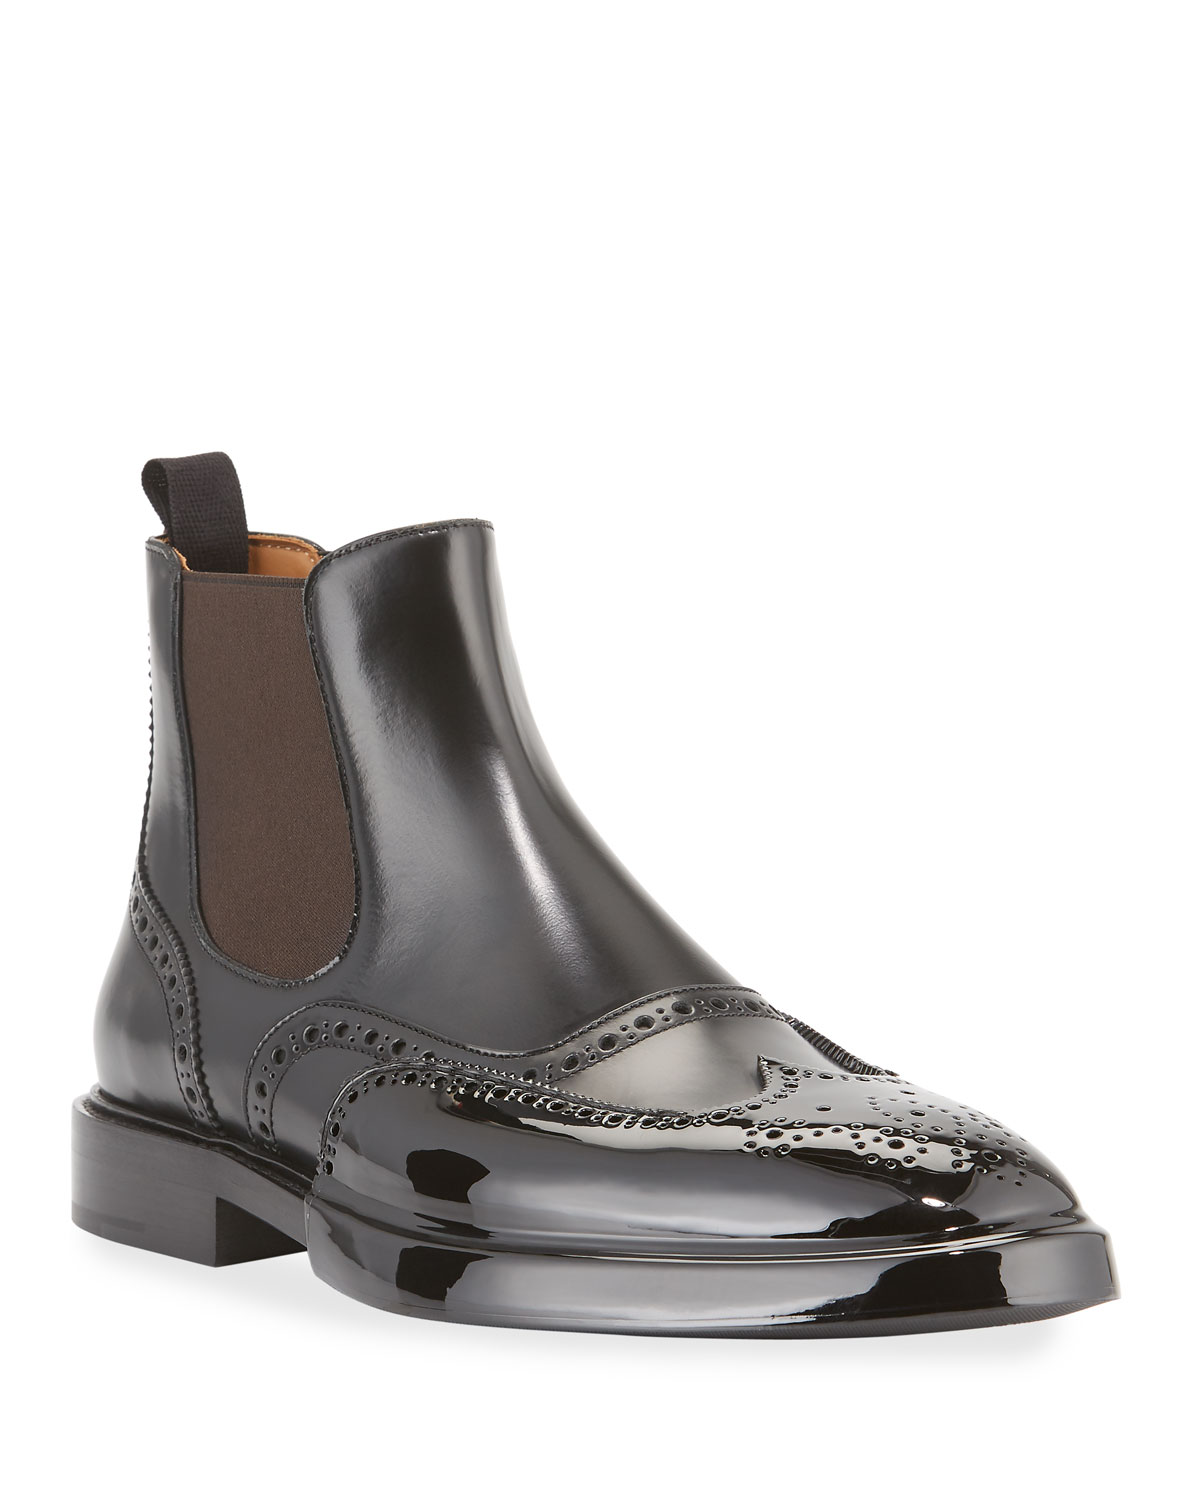 Brogue Chelsea Boots with Rubber Toe Cap